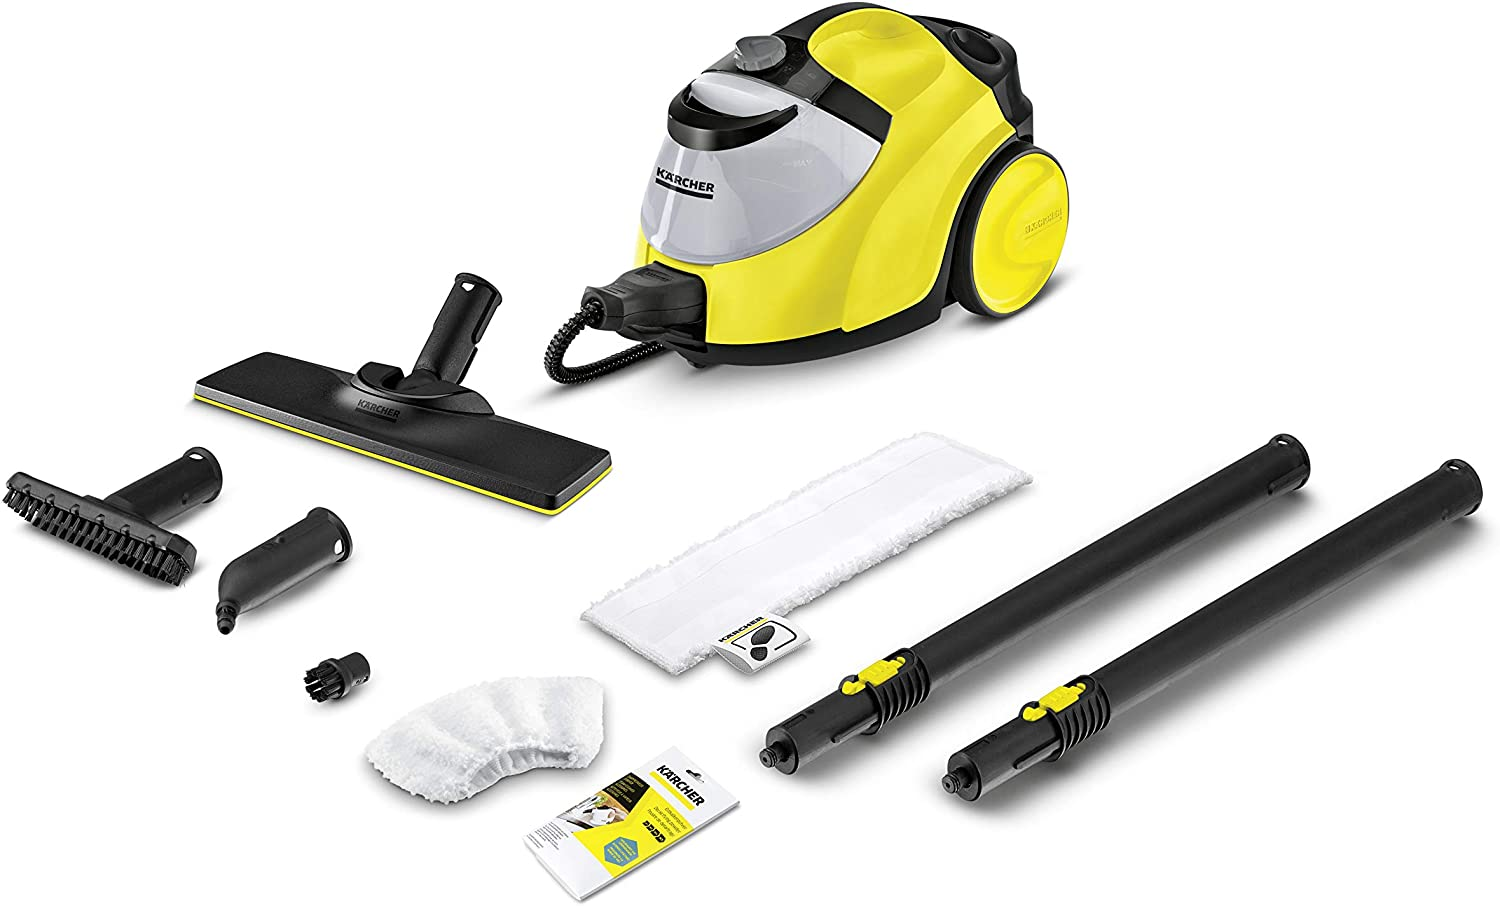 Kärcher SC 5 SC5 EasyFix Cleaner, Yellow